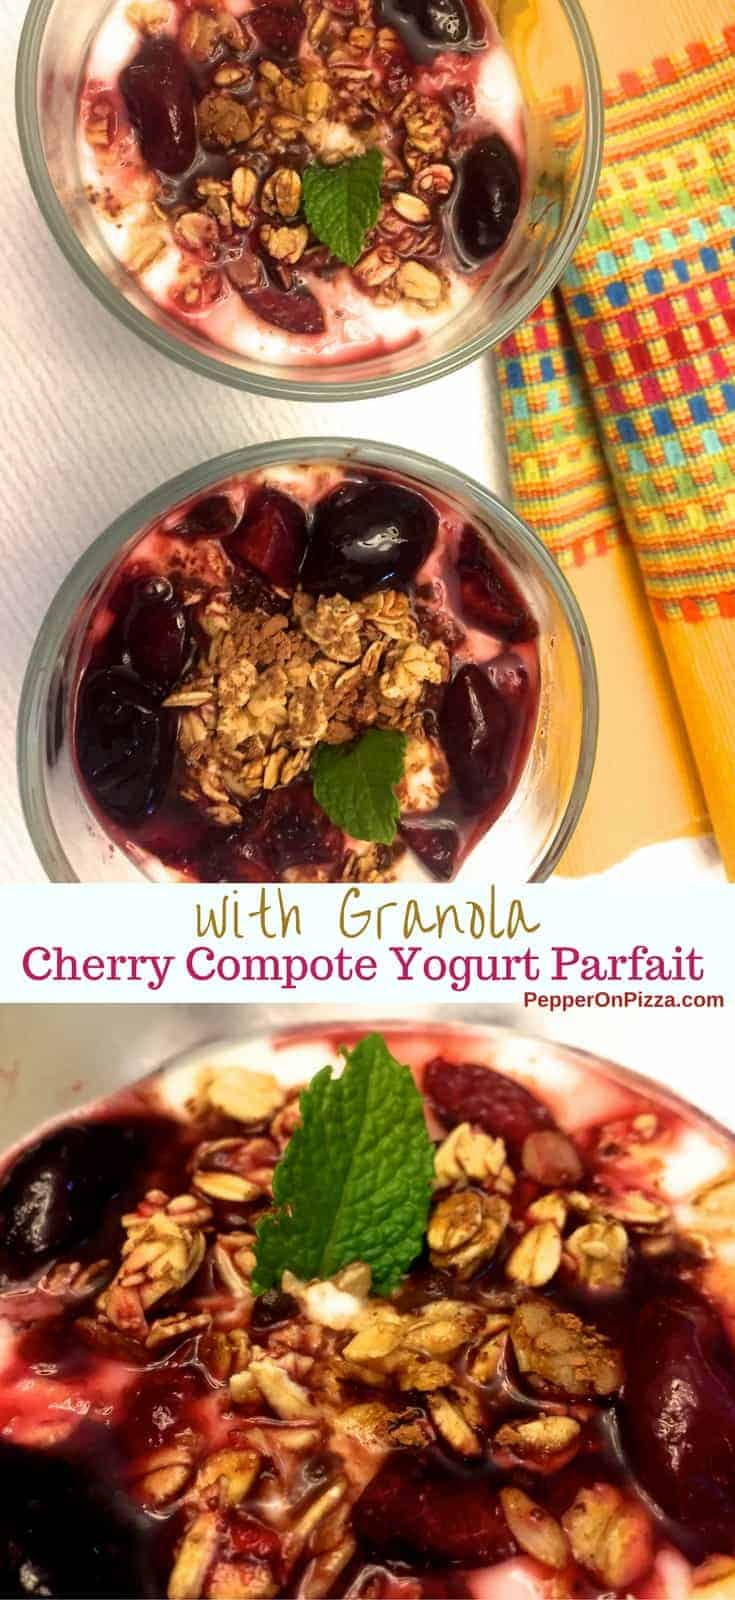 Easy to make, delicious Cherry Compote Yogurt Parfait with Granola. Sweet cherries, granola or nuts with cocoa powder and cherry compote topping the yogurt.